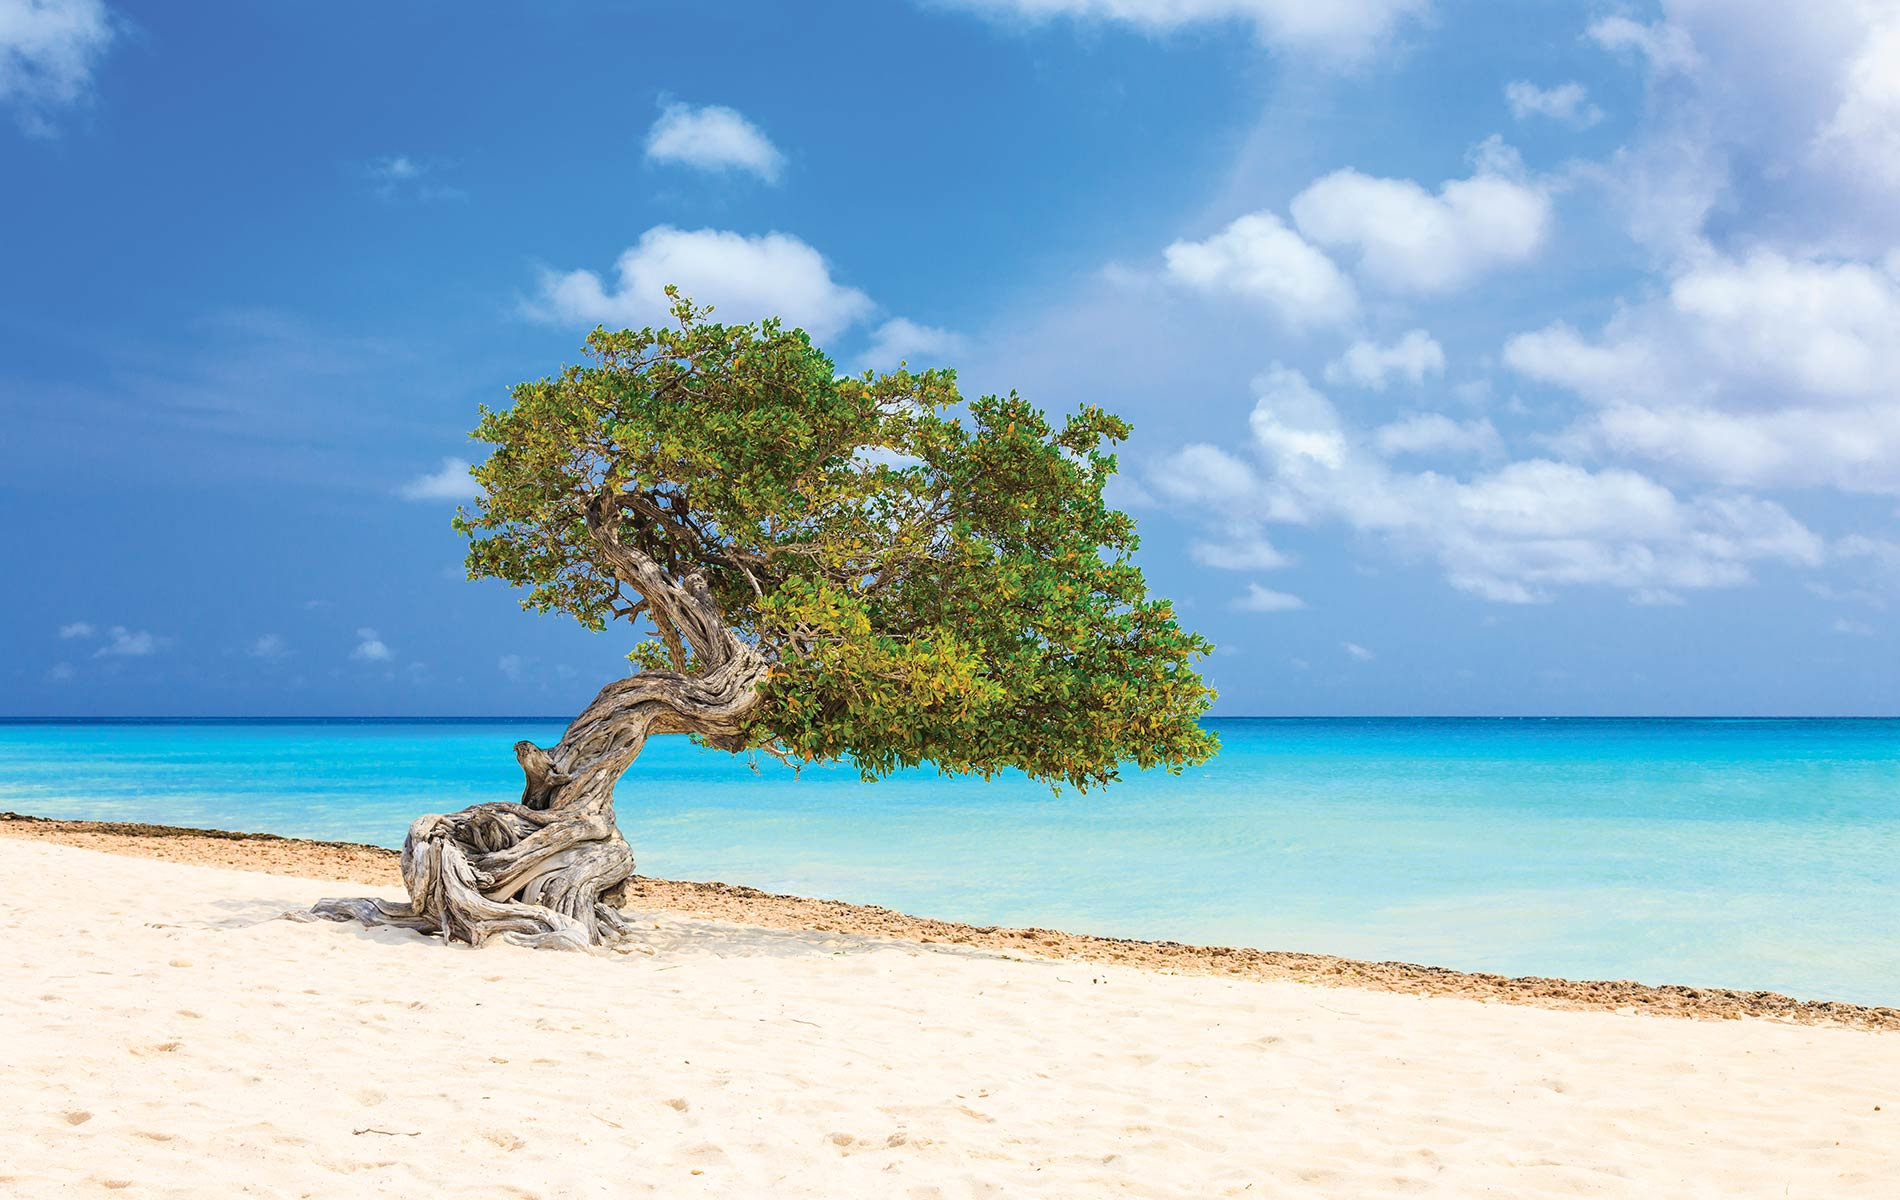 A native divi-divi tree, stretching toward azure waters, creates a serene and whimsical sight for Aruba island visitors.